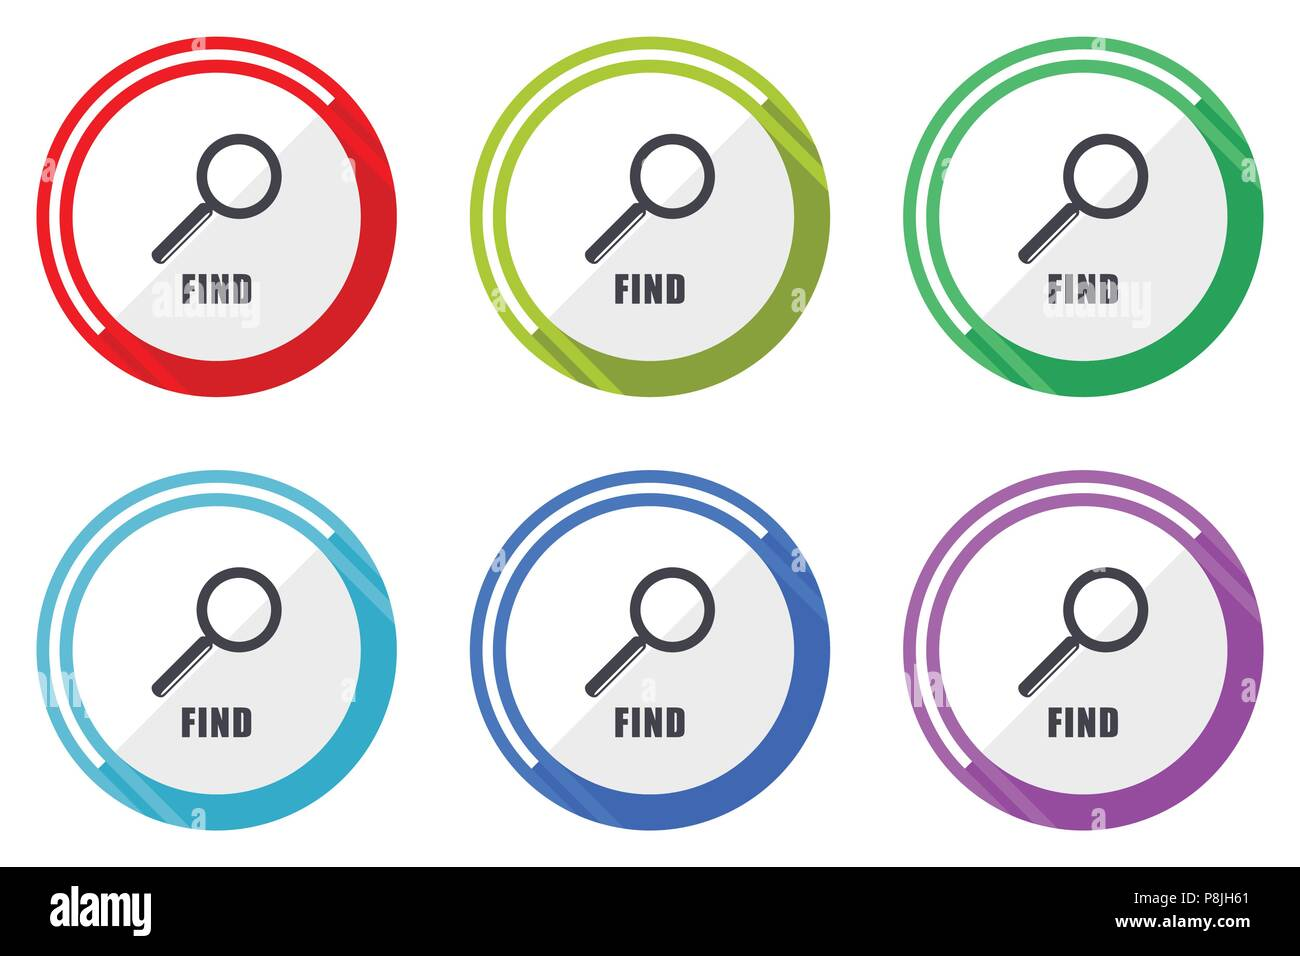 Find Vector Icons Set Of Colorful Flat Design Internet Symbols On